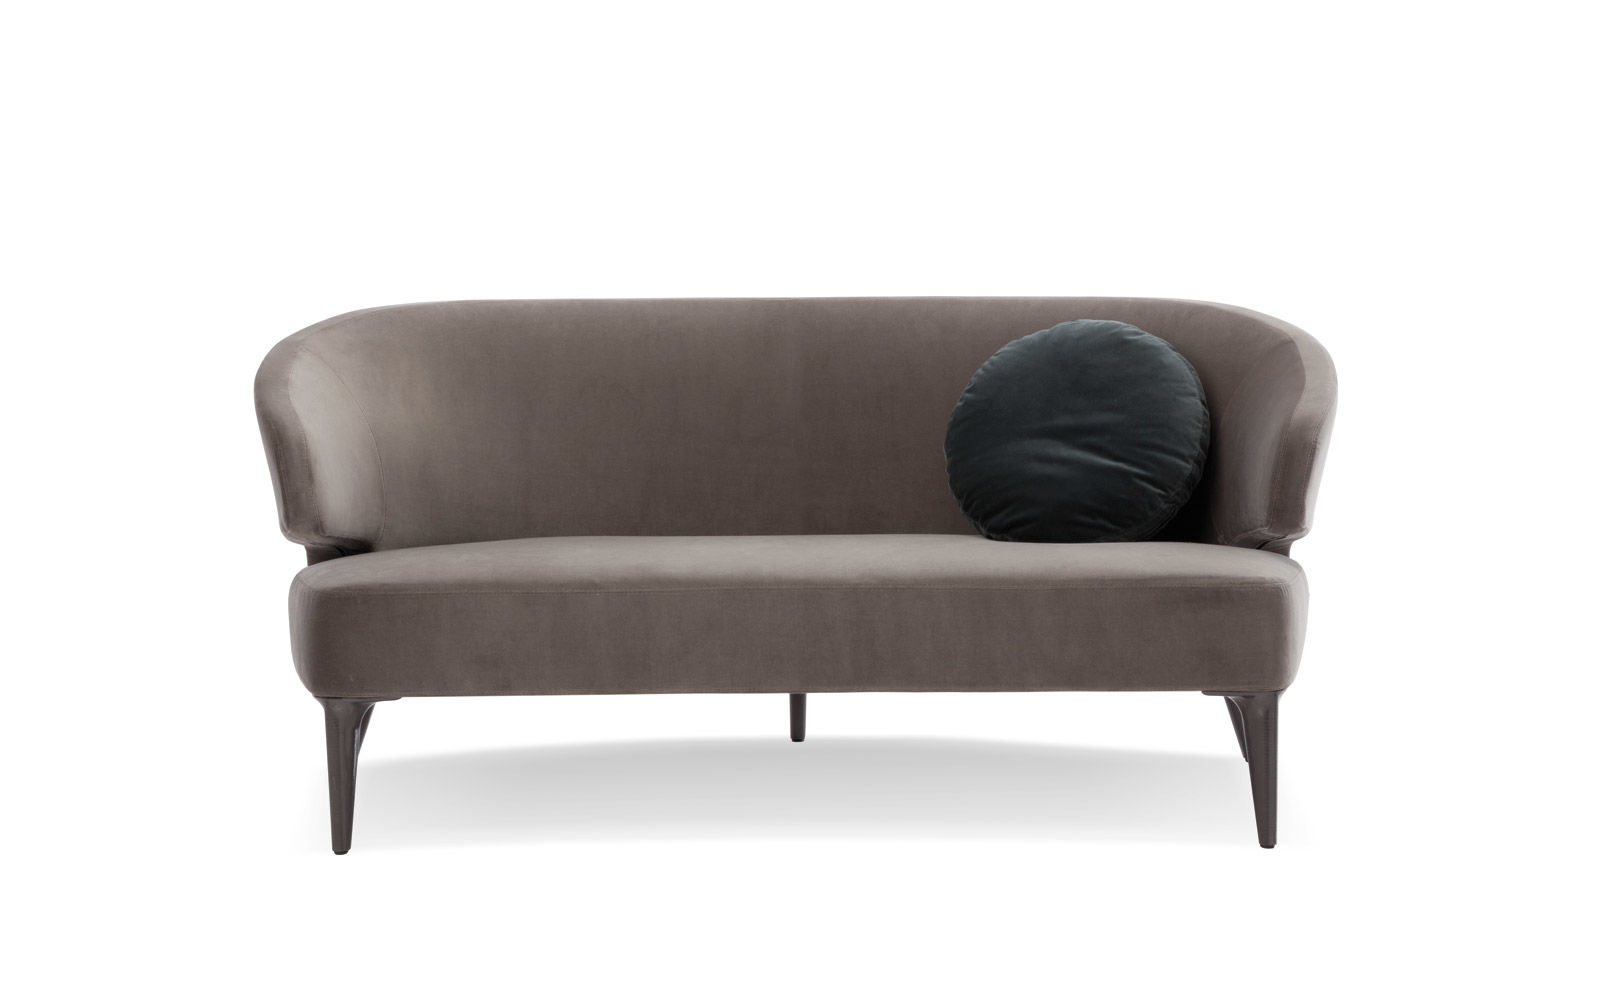 Full Size of Minotti Freeman Sofa Dimensions Andersen Sleeper Cad Block Uk Alexander W Schillig Sitzsack Sitzhöhe 55 Cm Halbrund De Sede Chesterfield Günstig Innovation Sofa Minotti Sofa